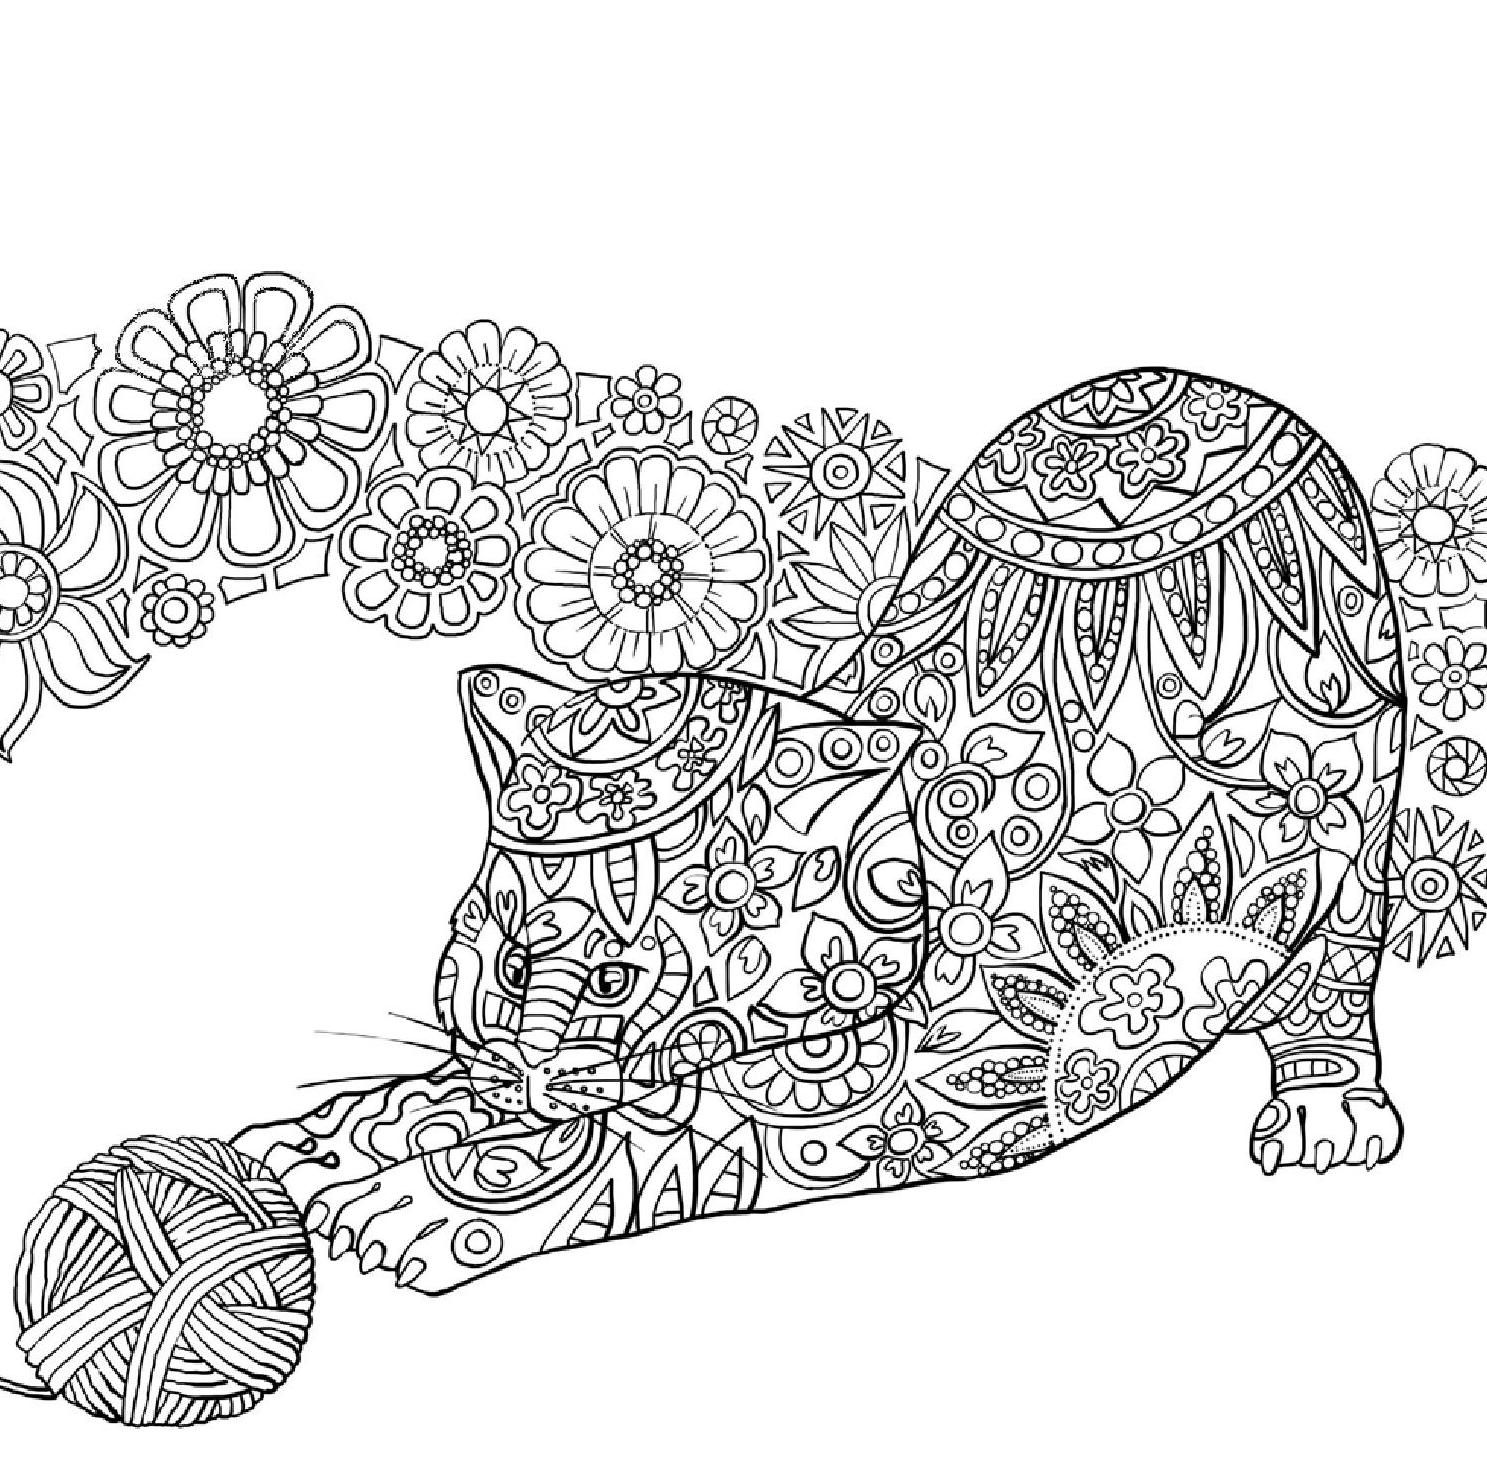 to print this free coloring page coloring difficult cat